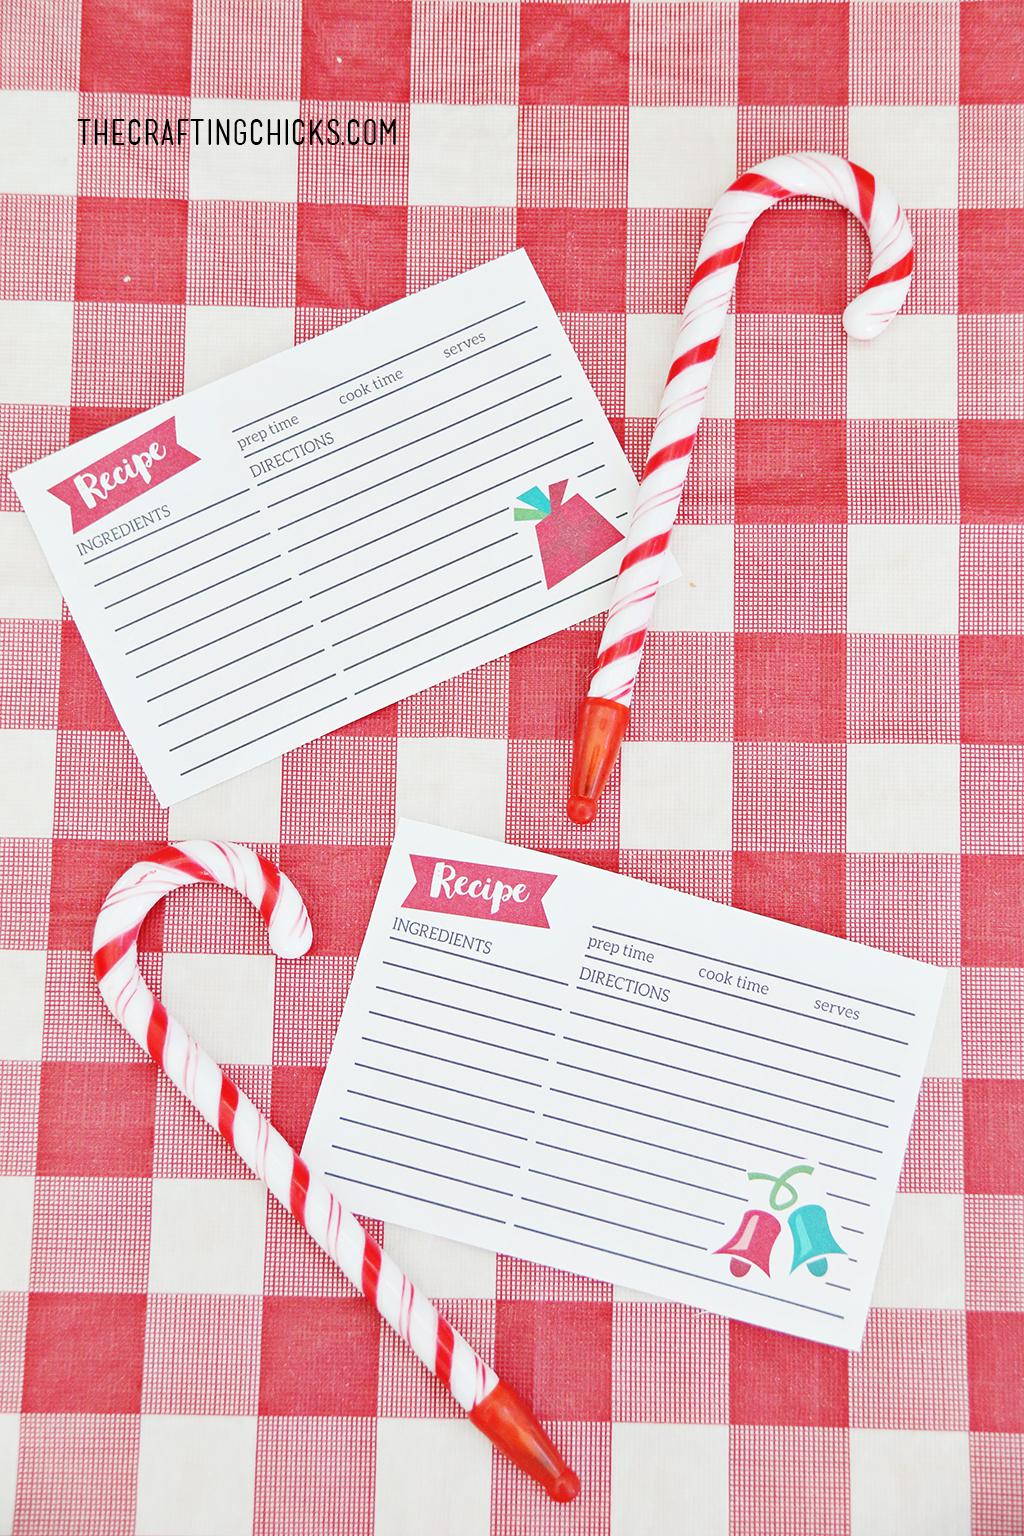 Tween Cookie Exchange Party Recipe Cards are a fun way to show youngsters how to collect fun recipes. Use this along with our DIY Recipe Box for a great party idea.